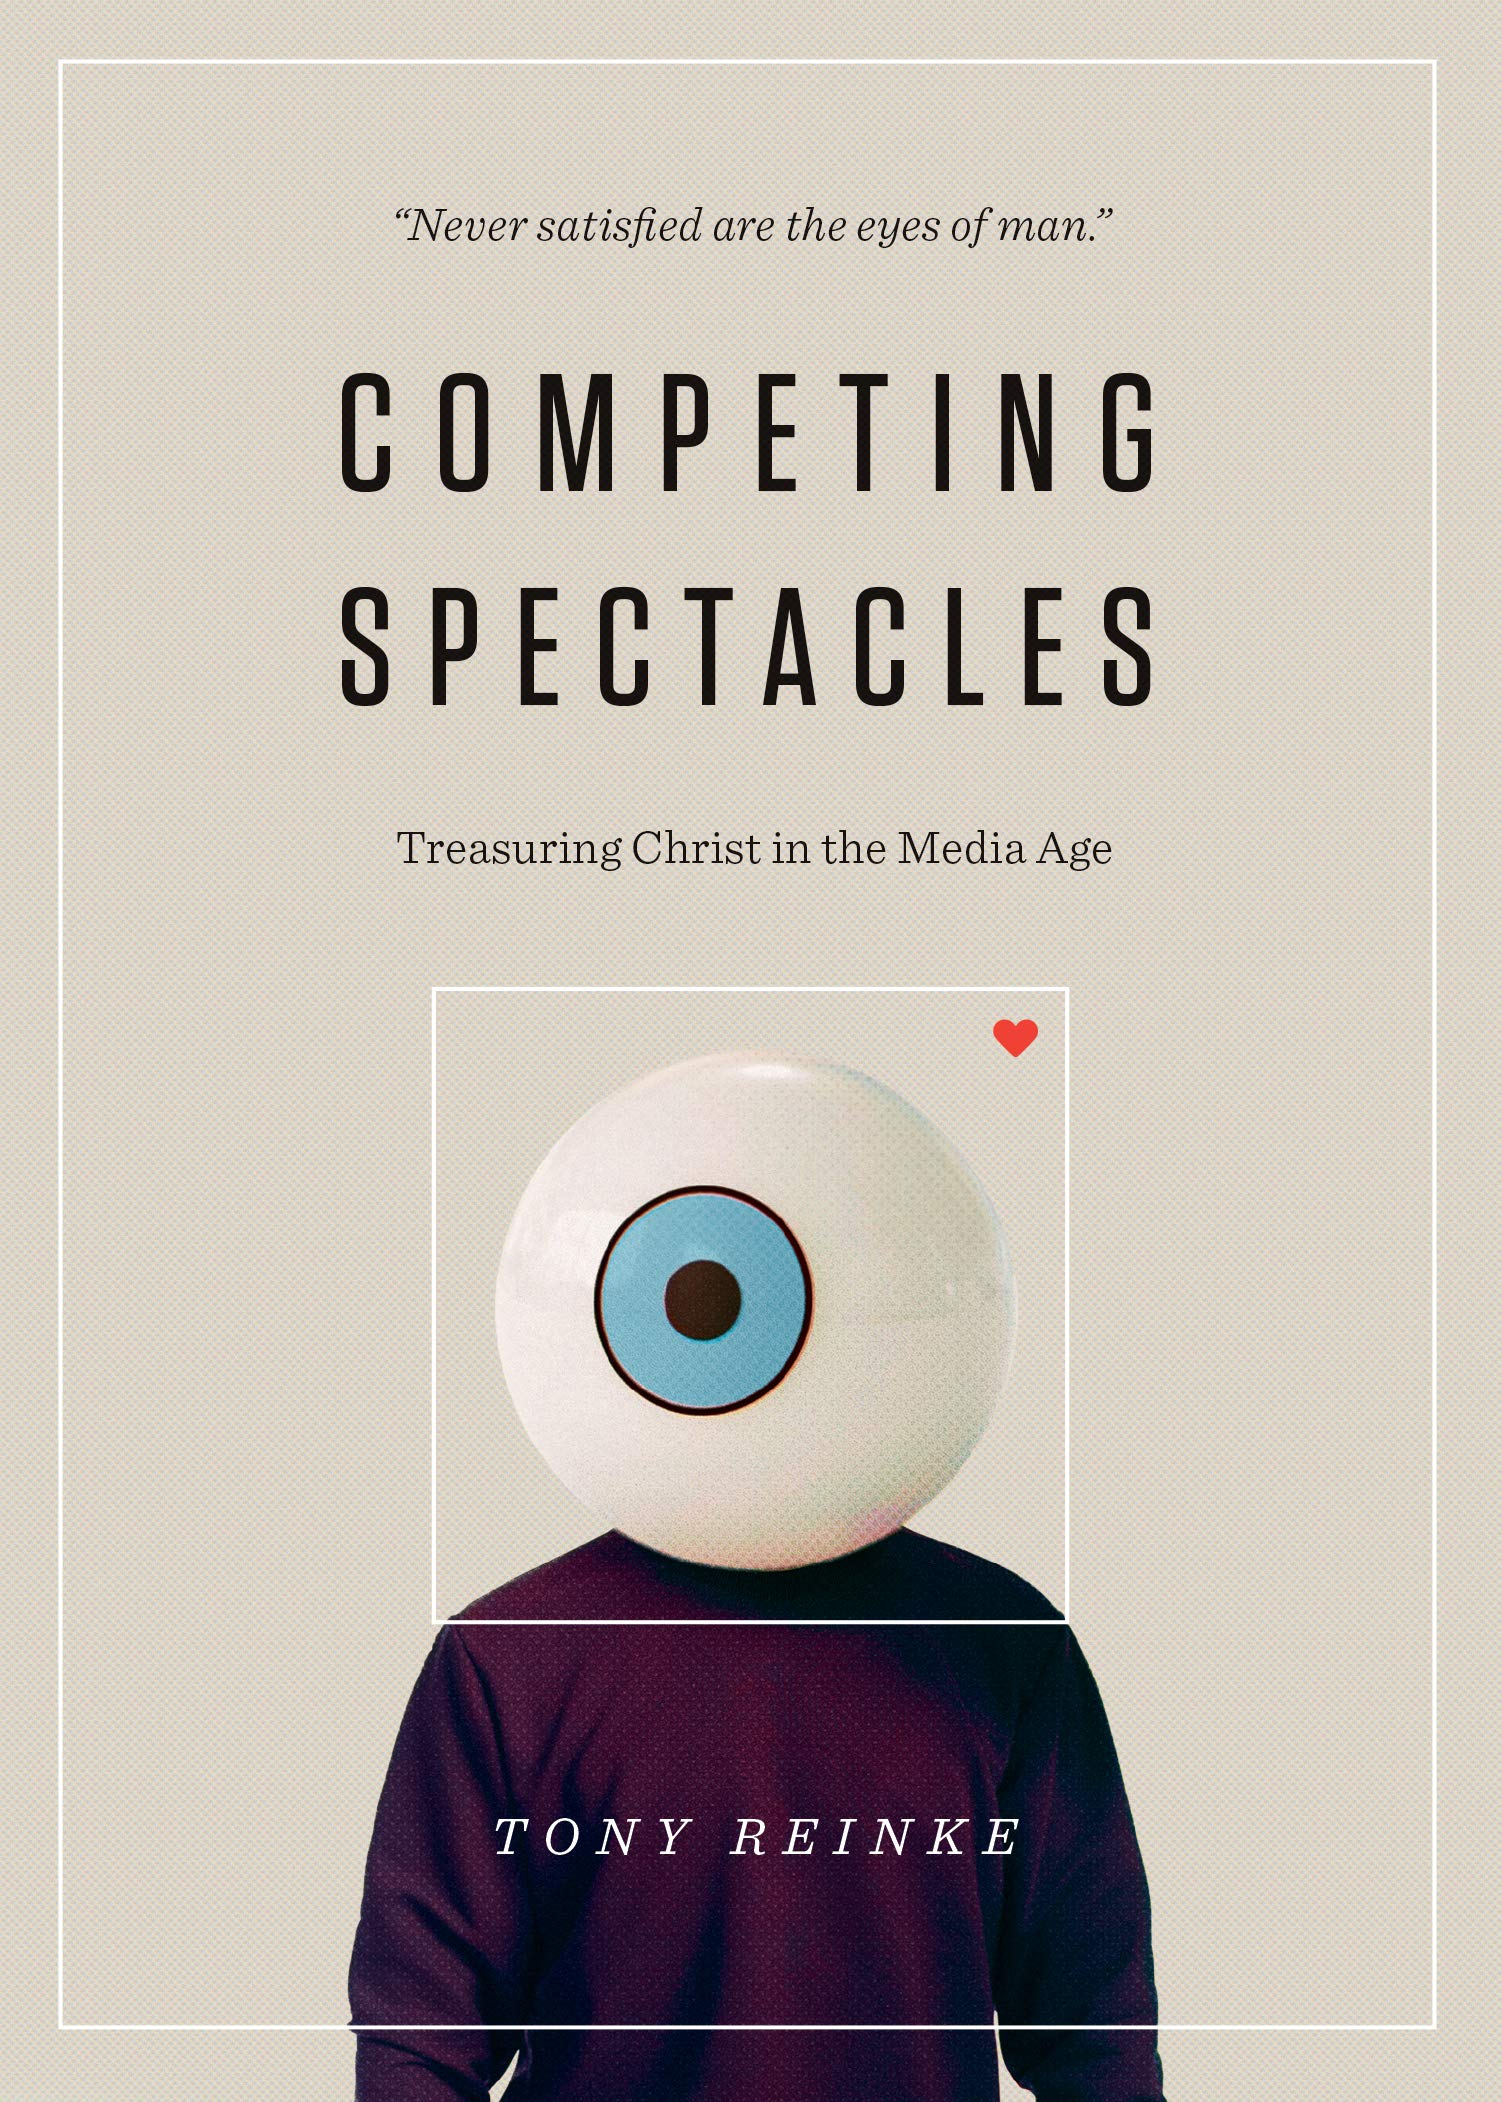 Competing Spectacles, Tony Reinke